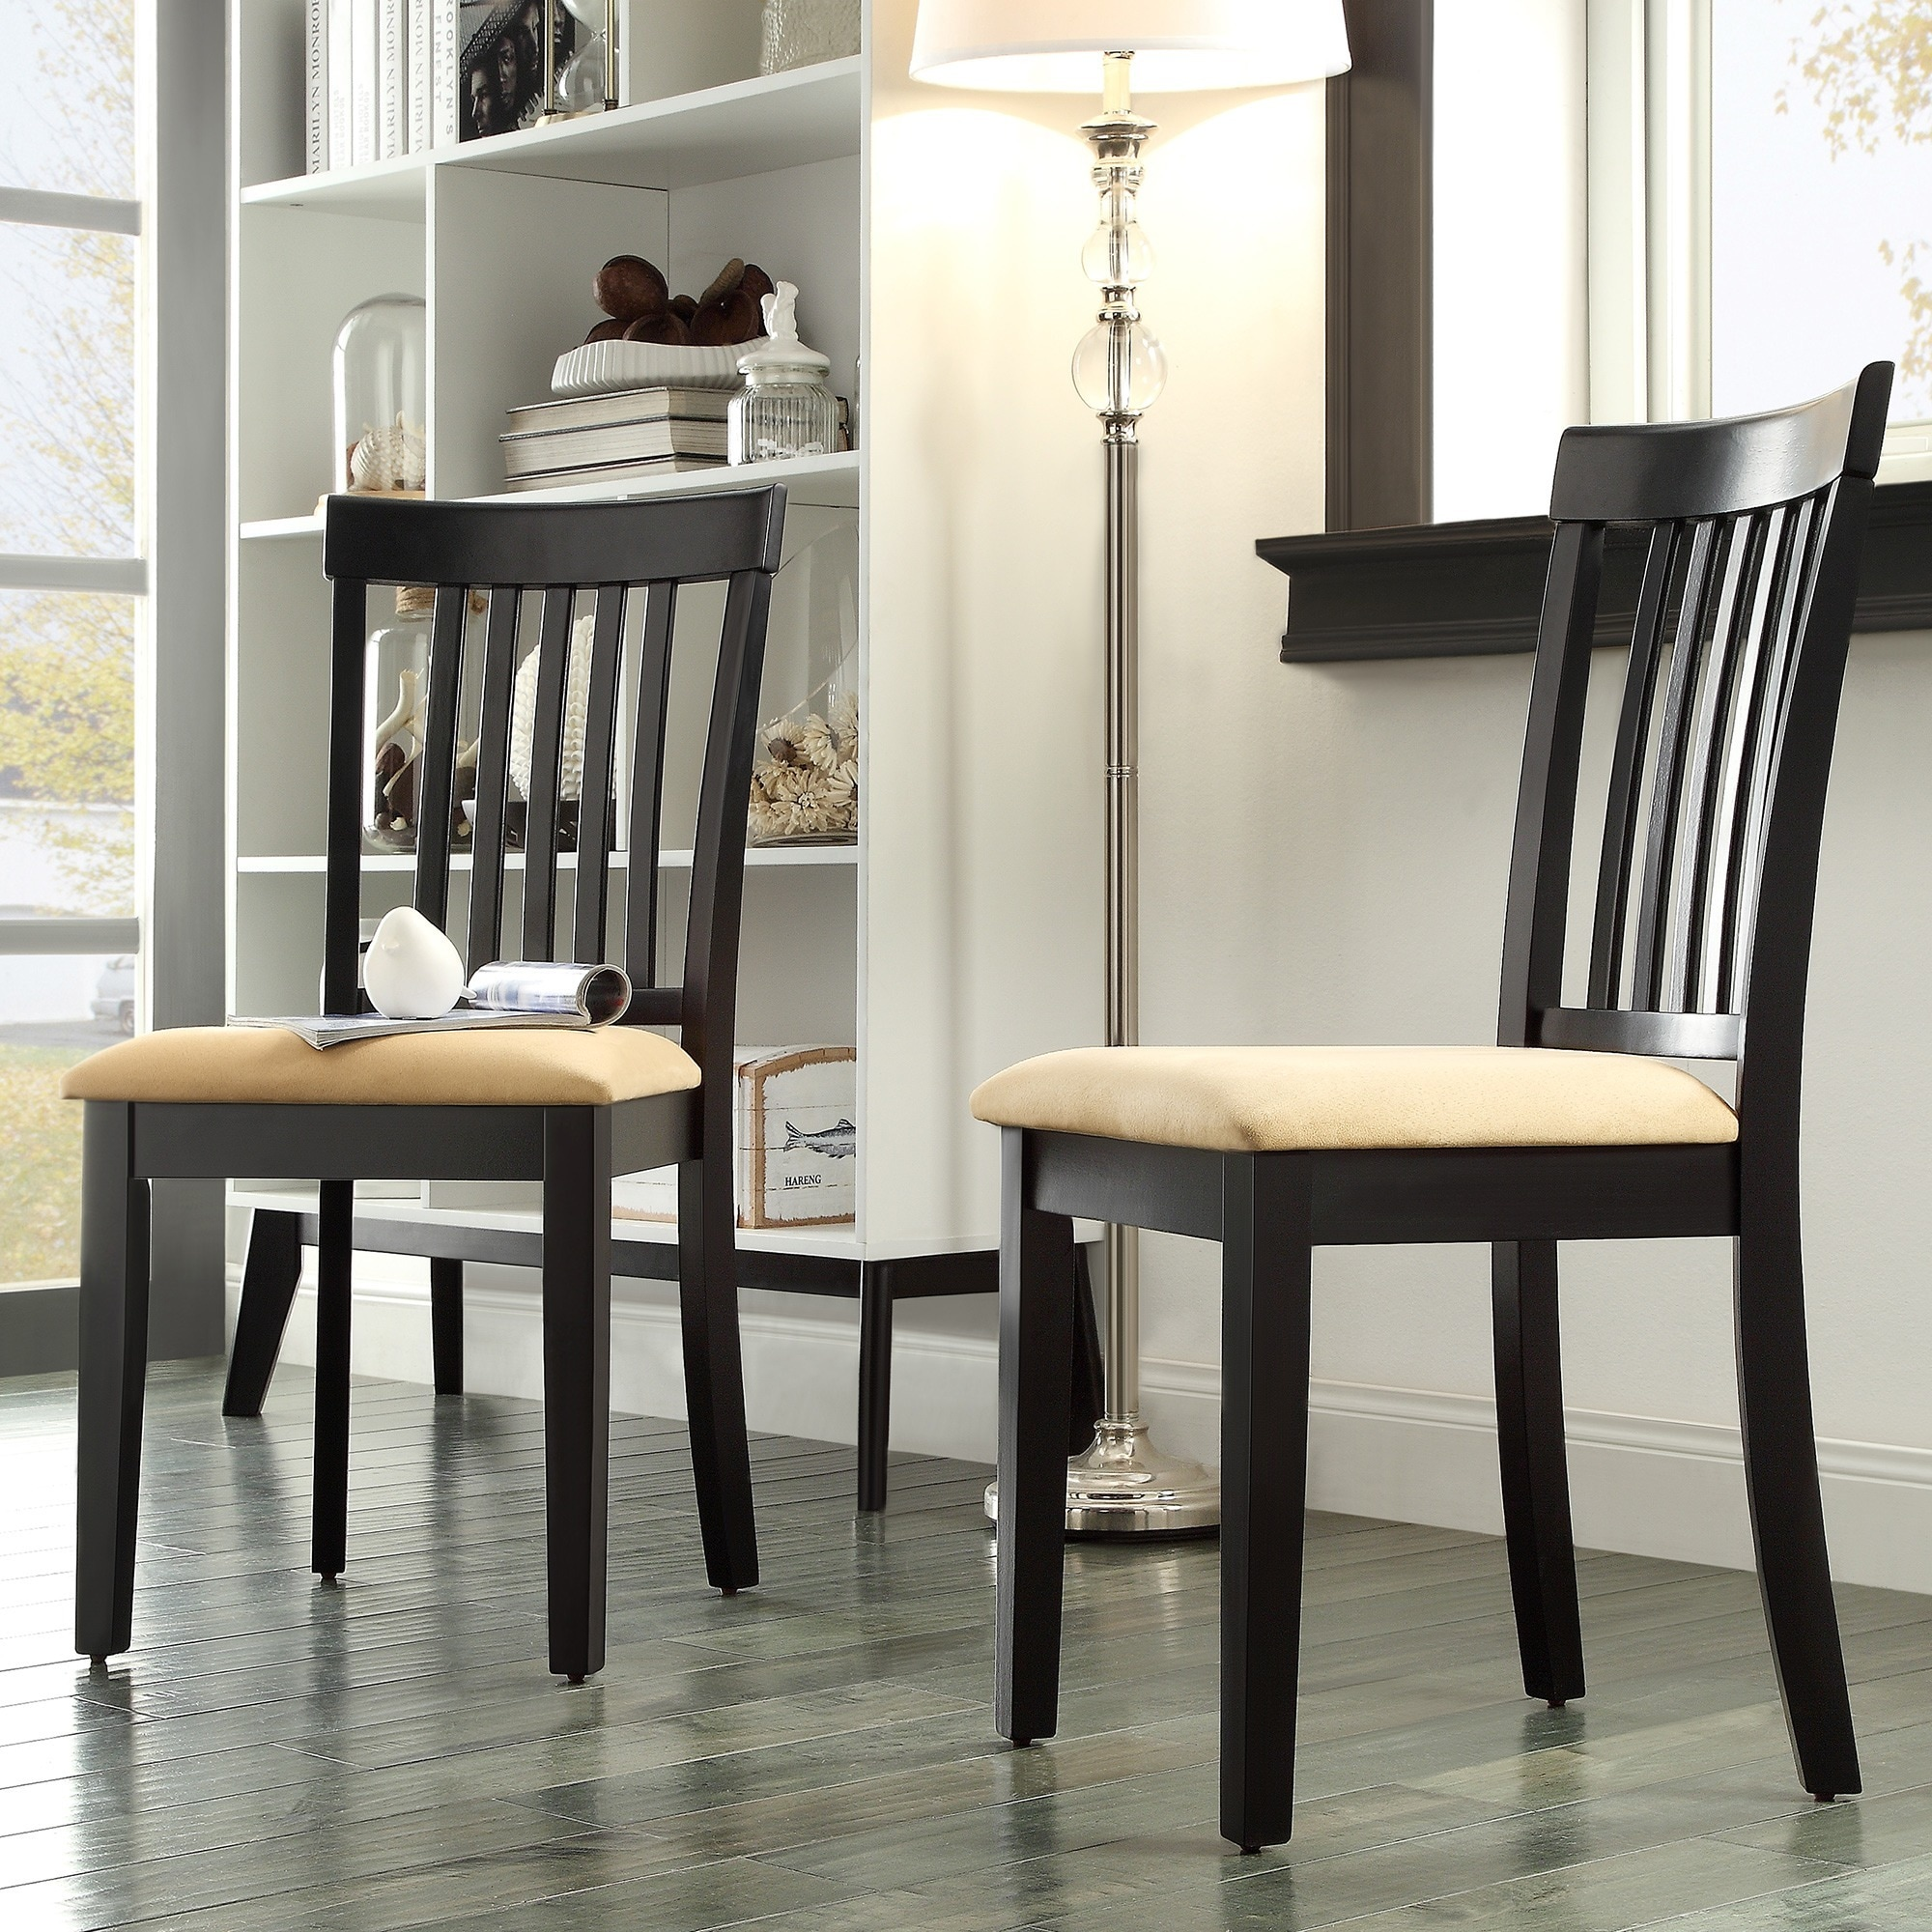 Wilmington Black Dining Chair (Set of 2) by iNSPIRE Q Classic - Free  Shipping Today - Overstock.com - 13769397